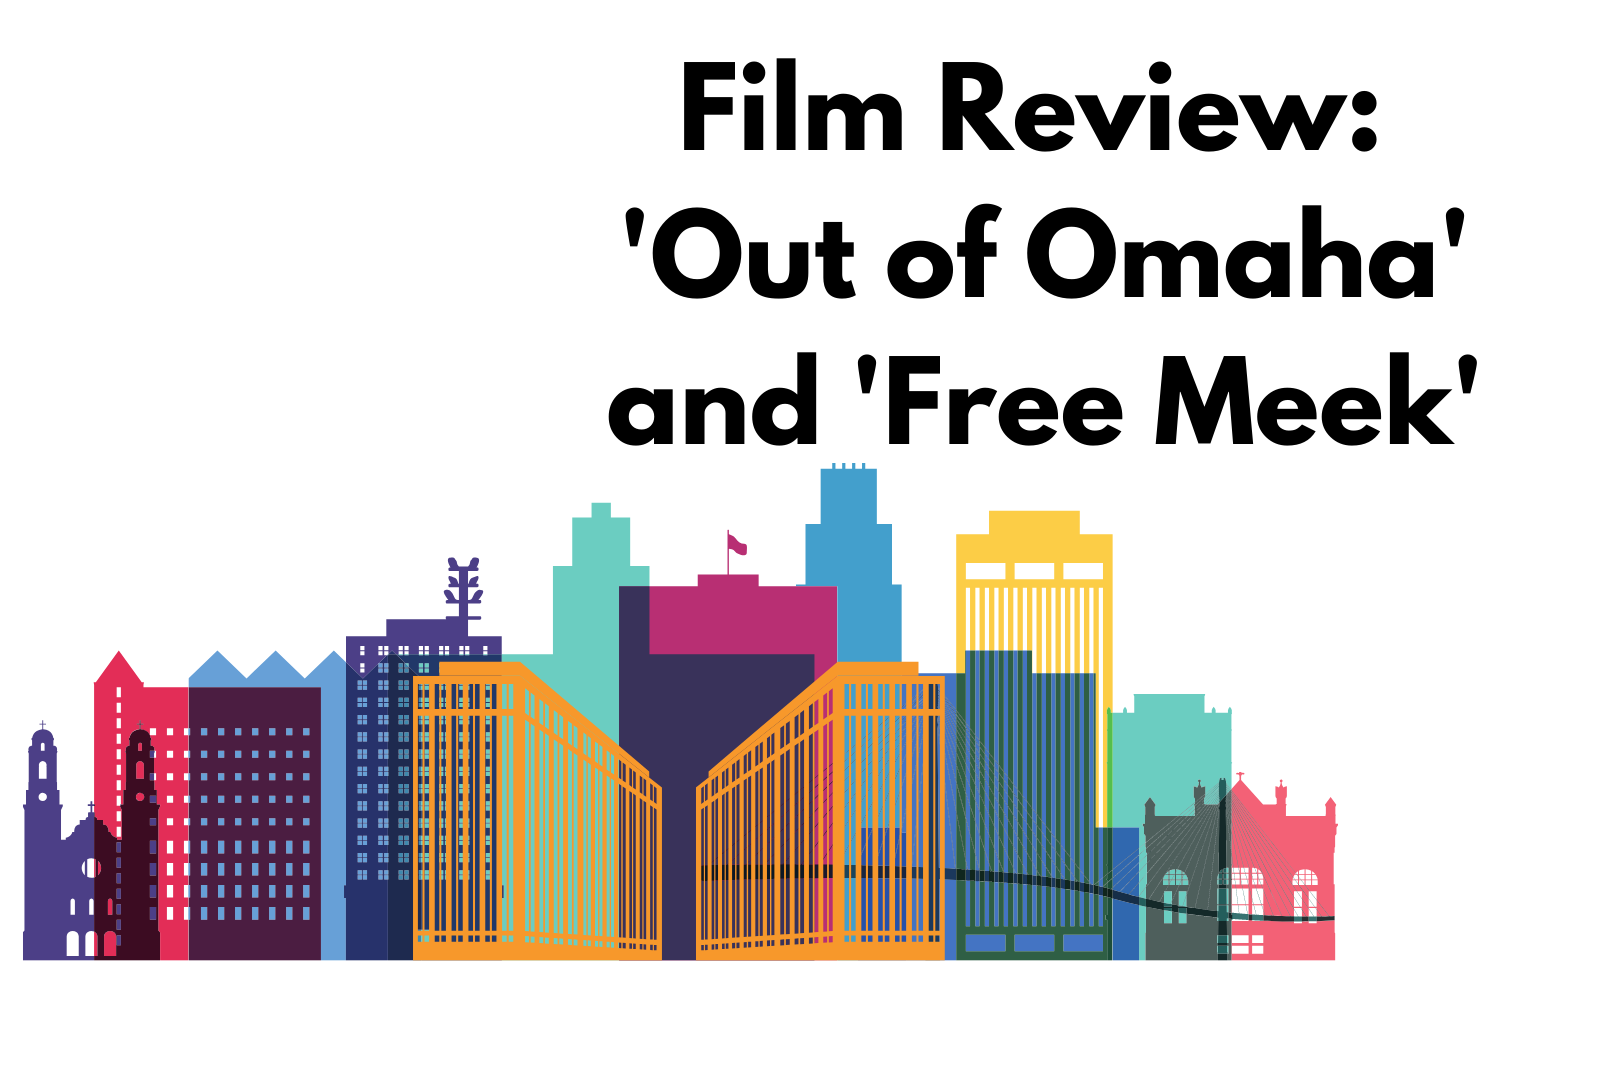 EP. 16 Film Review: Award-Winning Film 'Out of Omaha' and Amazon's 'Free Meek'